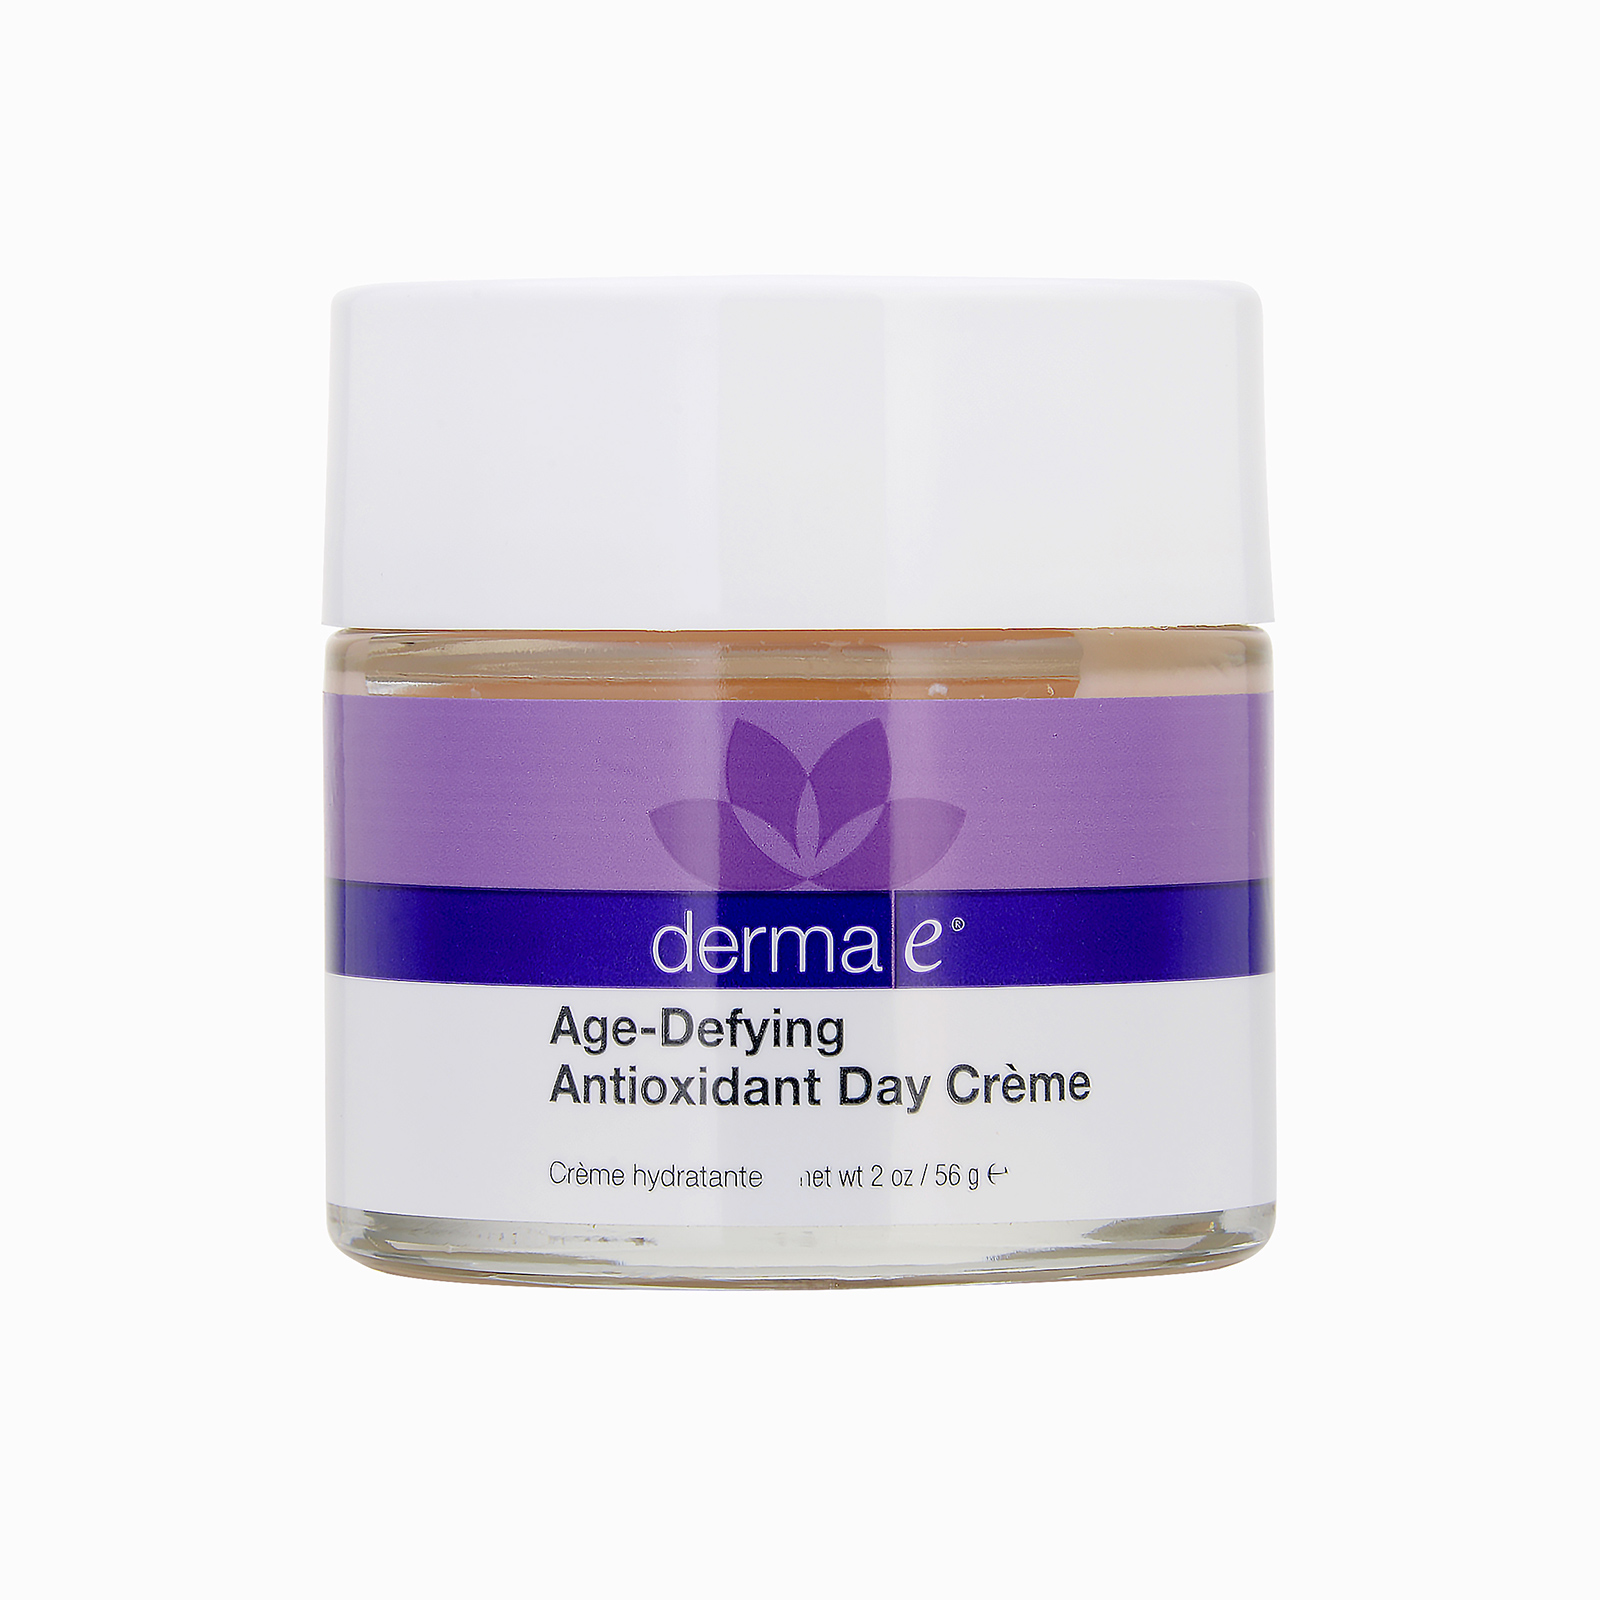 Derma e Age-Defying Antioxidant Day Crème With Astaxanthin and Pycnogenol (For All Skin Types) 2oz, 56g